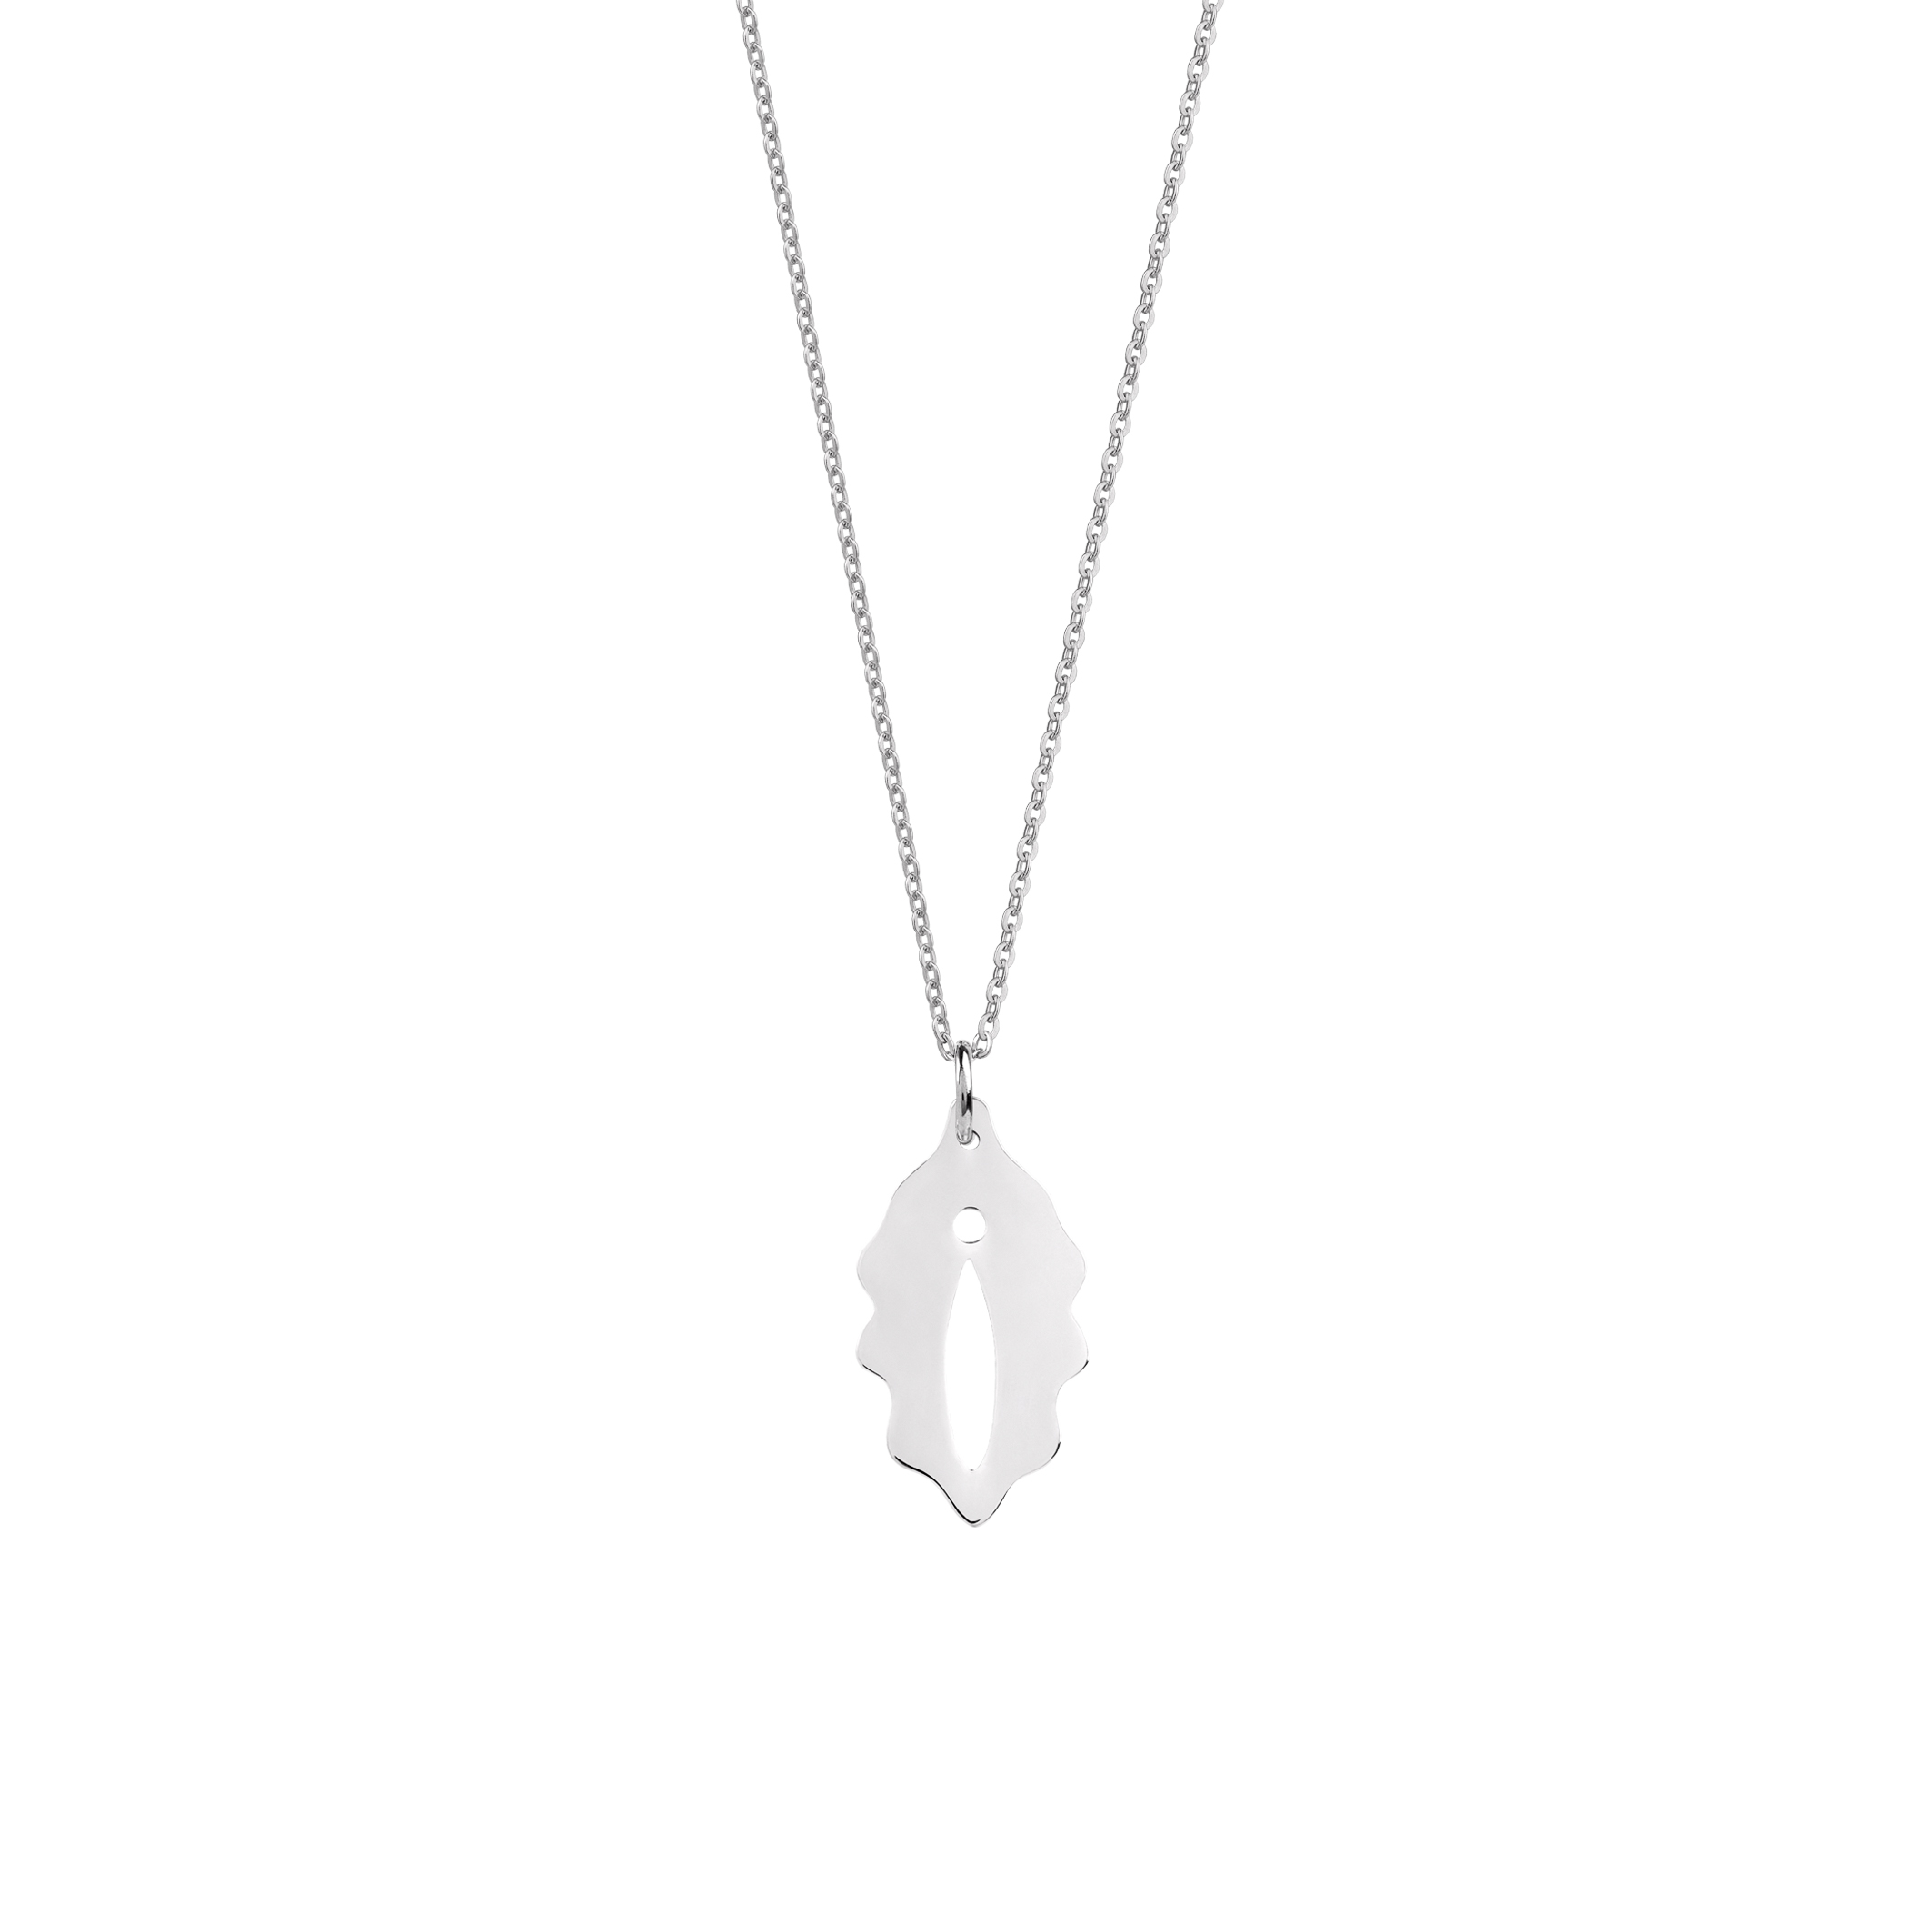 feminin necklace/ silver